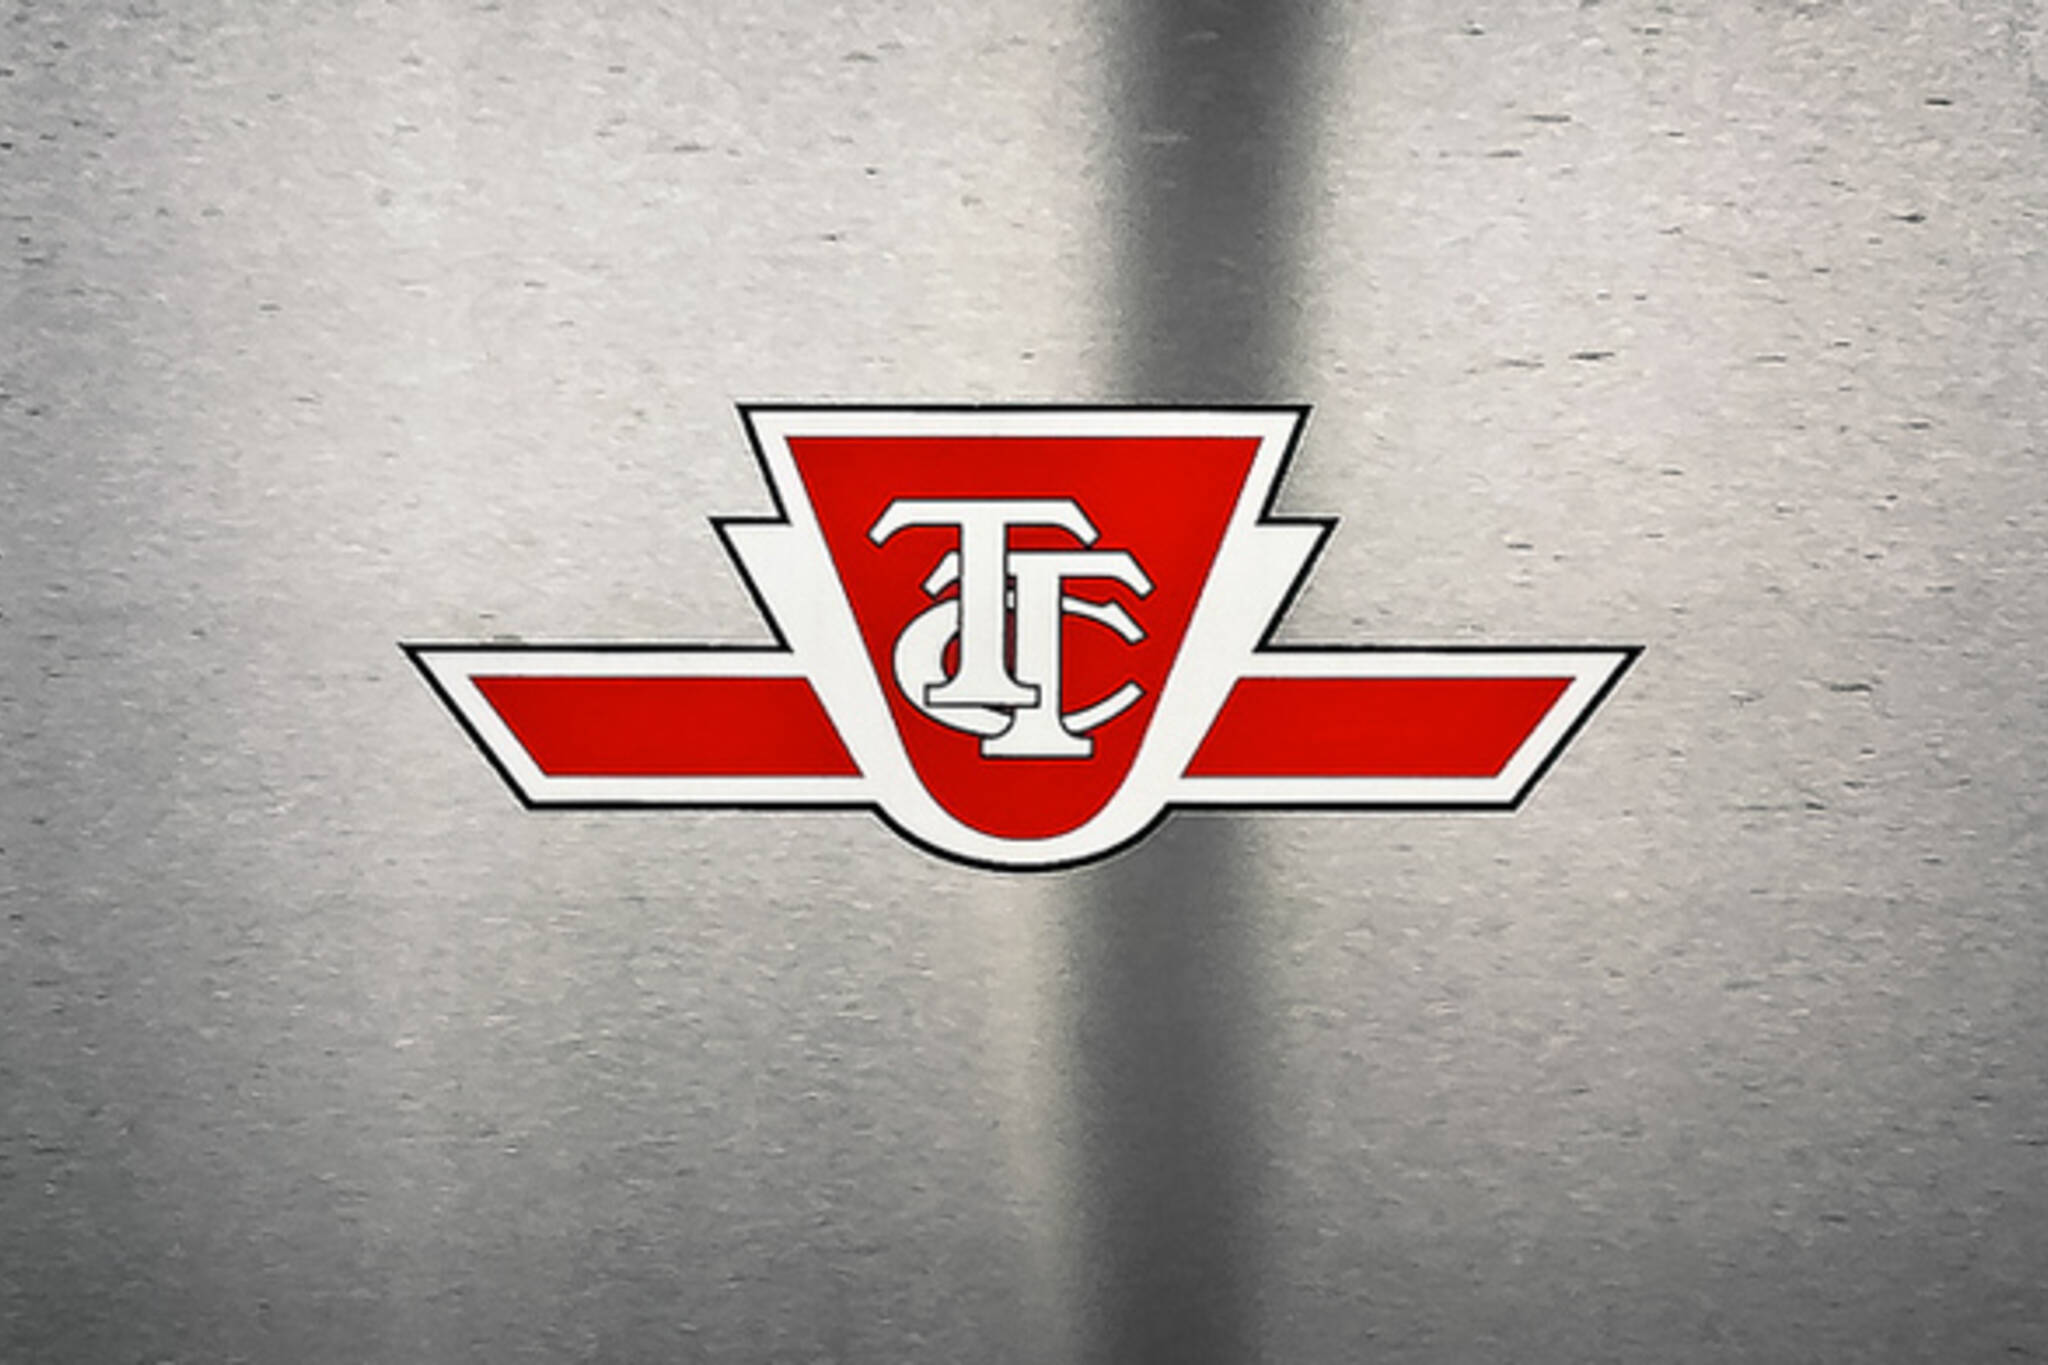 TTC Board Dissolved